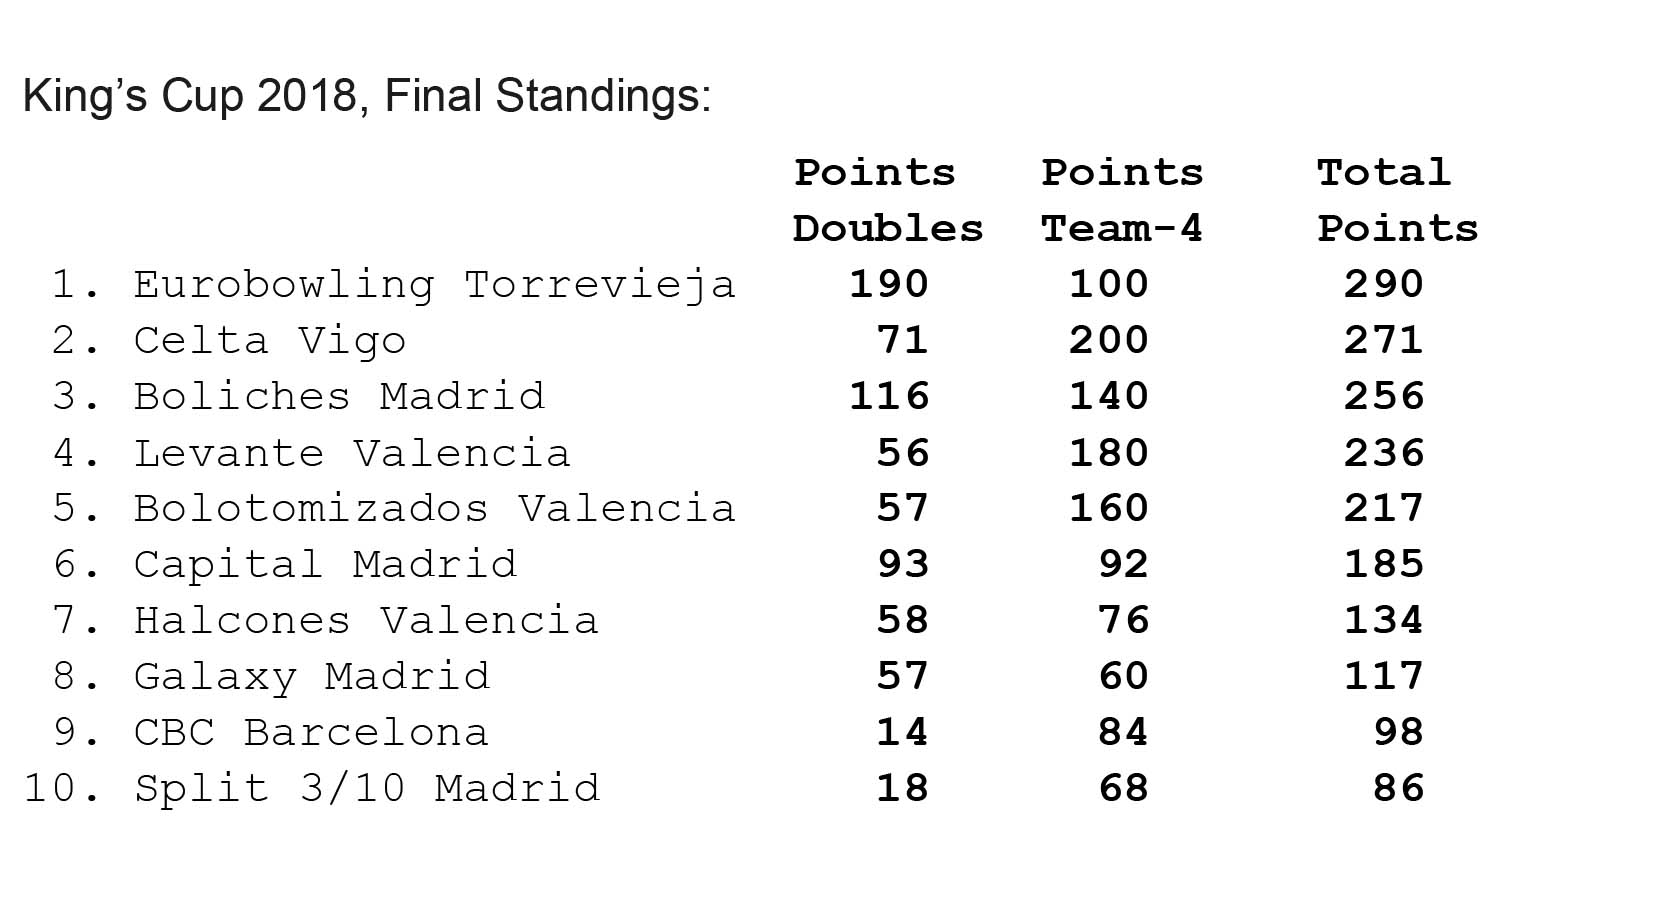 Eurobowling Torrevieja's Men Win The King's Cup